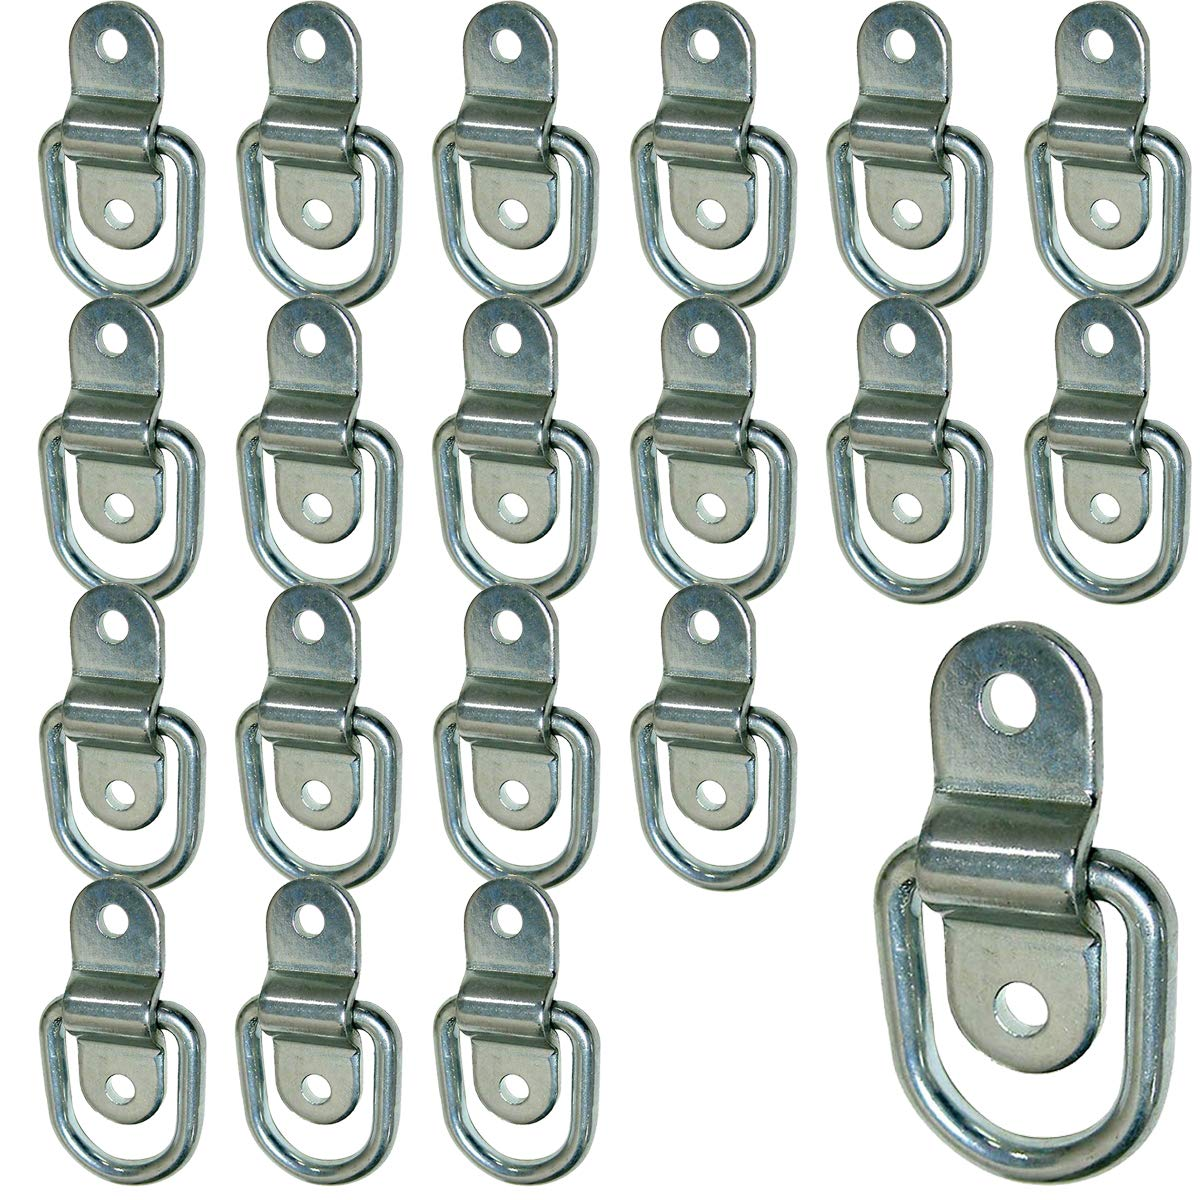 Stainless Steel D-ring Tiedowns 3,500 lb. Capacity Tie Down Anchor - 20 Pack by Sierra Pacific Engineering